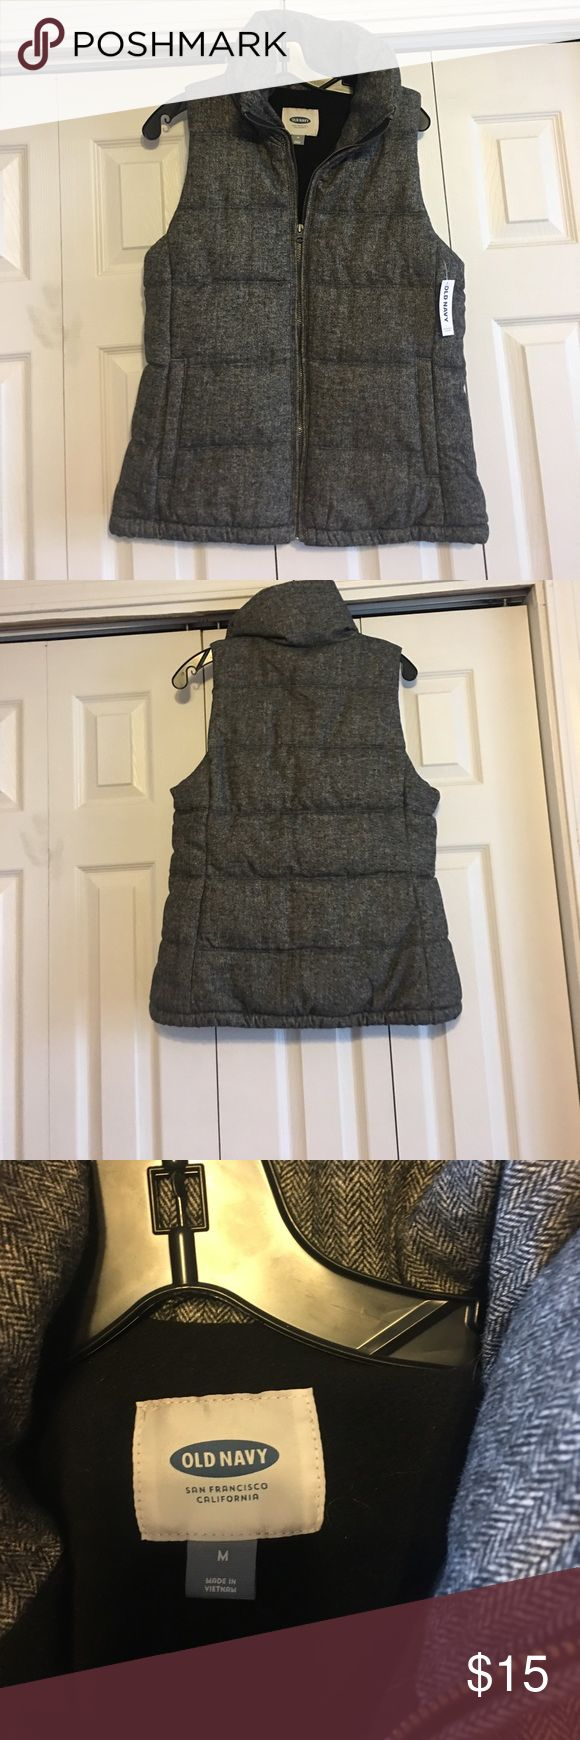 Grey Old Navy vest Grey Old Navy Vest size medium, new with tags!! Great for a casual fall or winter day!! Old Navy Jackets & Coats Vests